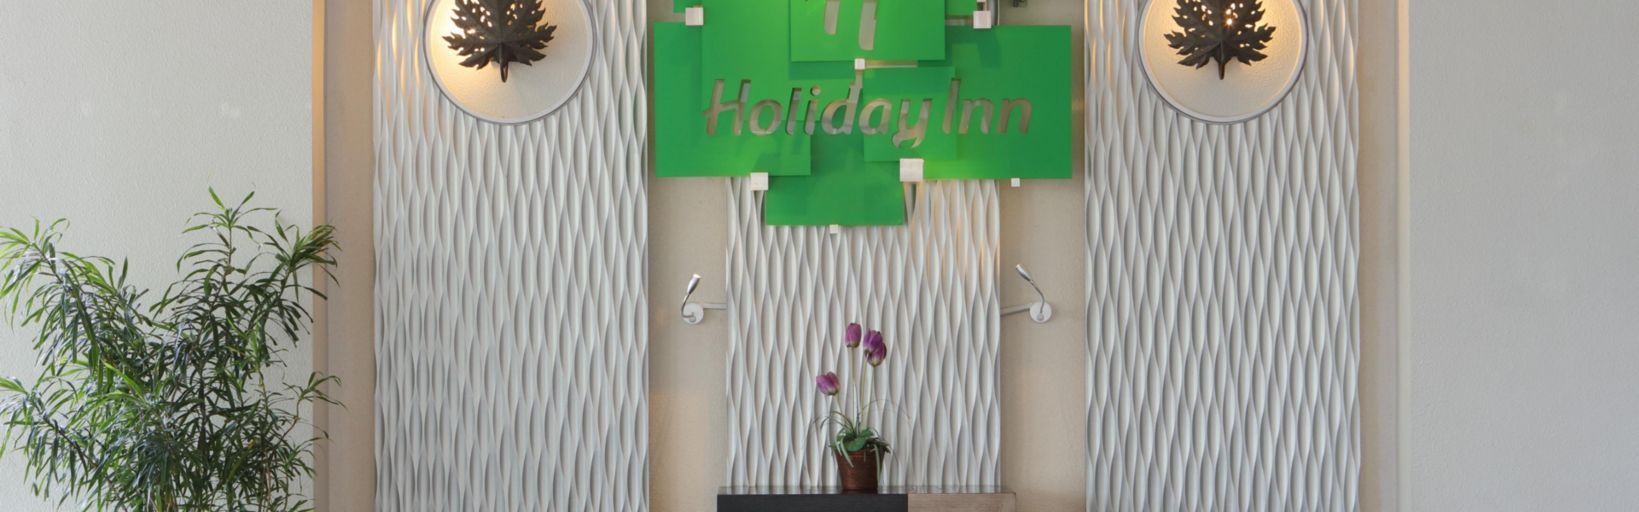 Holiday Inn Bandung Pasteur Hotel Ihg Front Desk Group Check